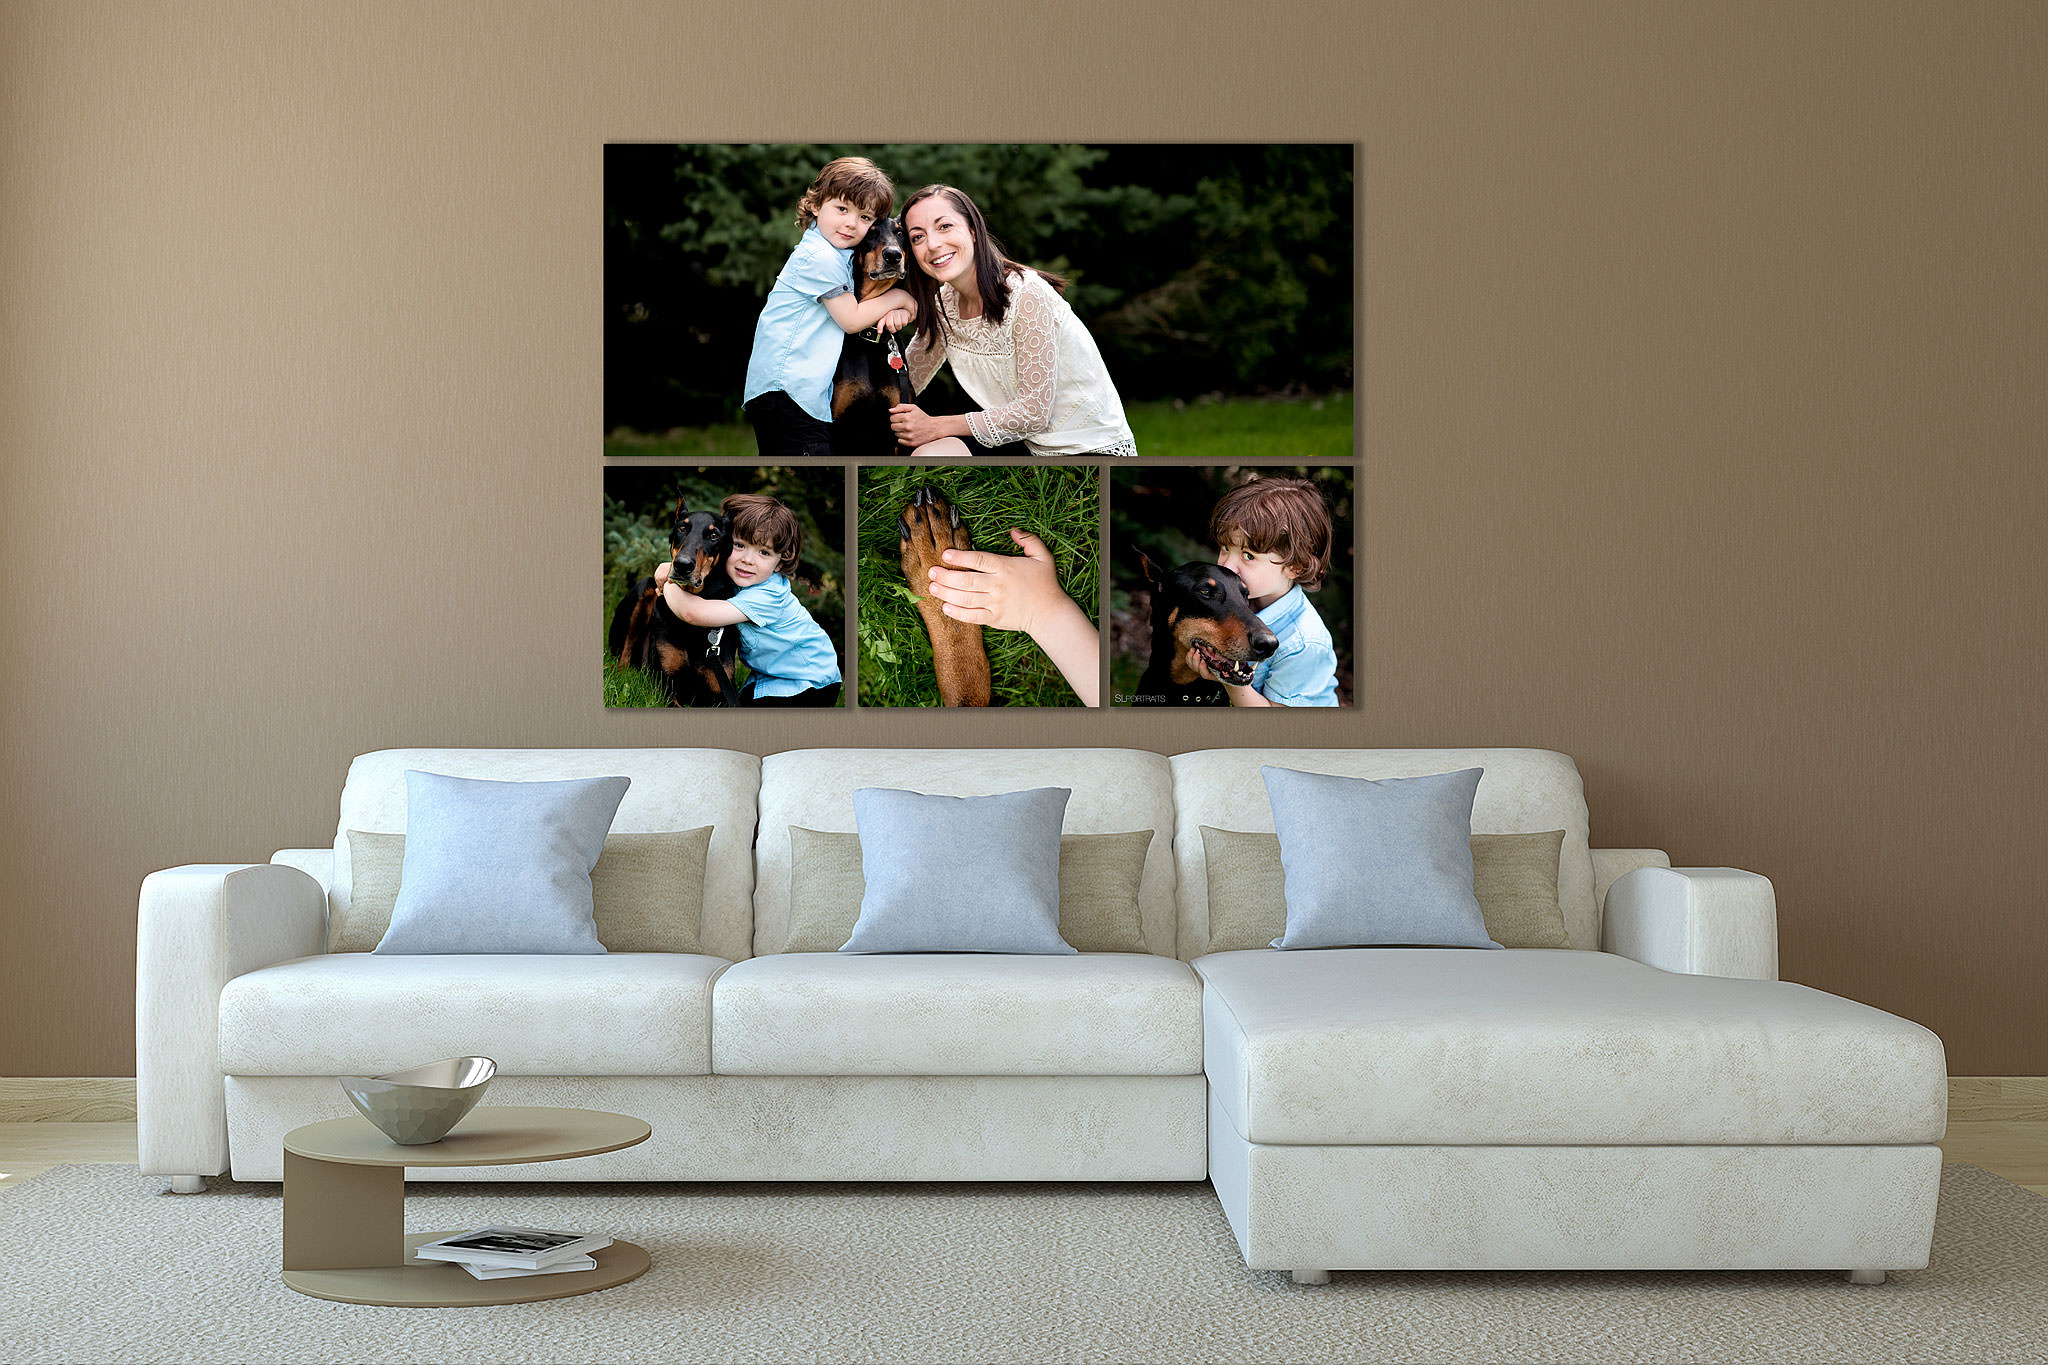 large wall art collection of a mom son and dog hung above a couch by top calgary portrait photographer sean leblanc